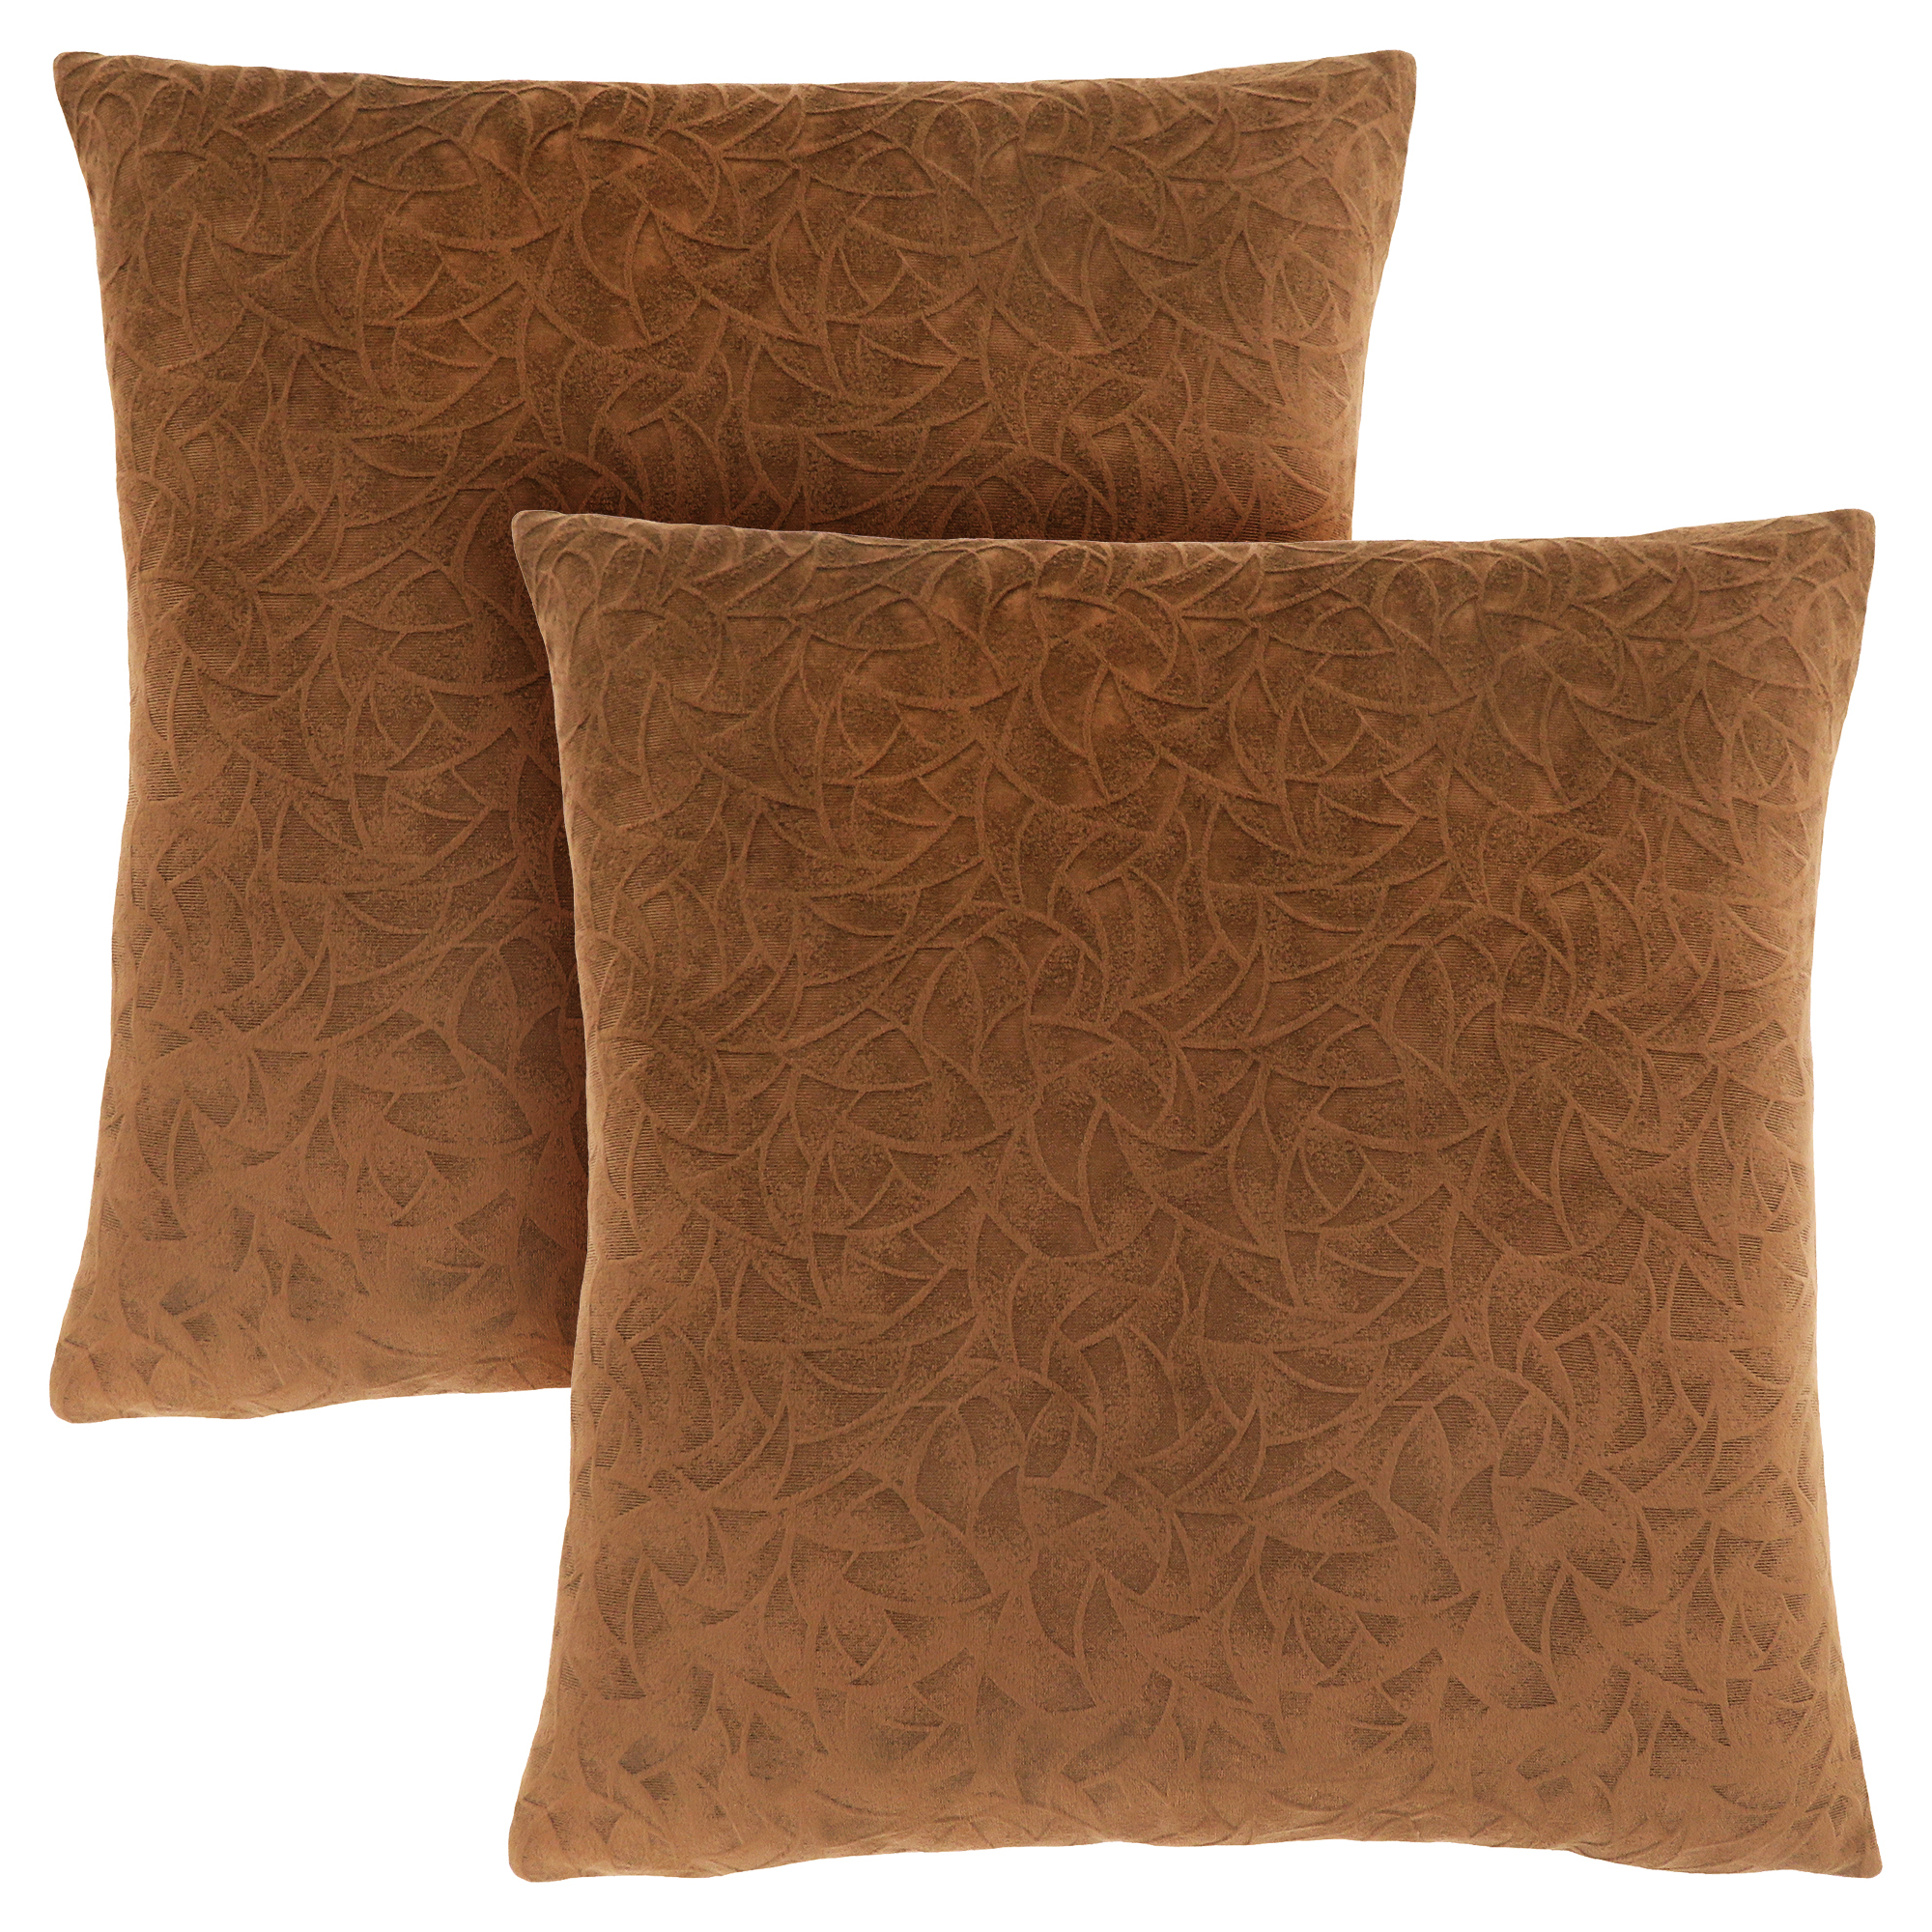 "PILLOW - 18""X 18"" / LIGHT BROWN FLORAL VELVET / 2PCS"